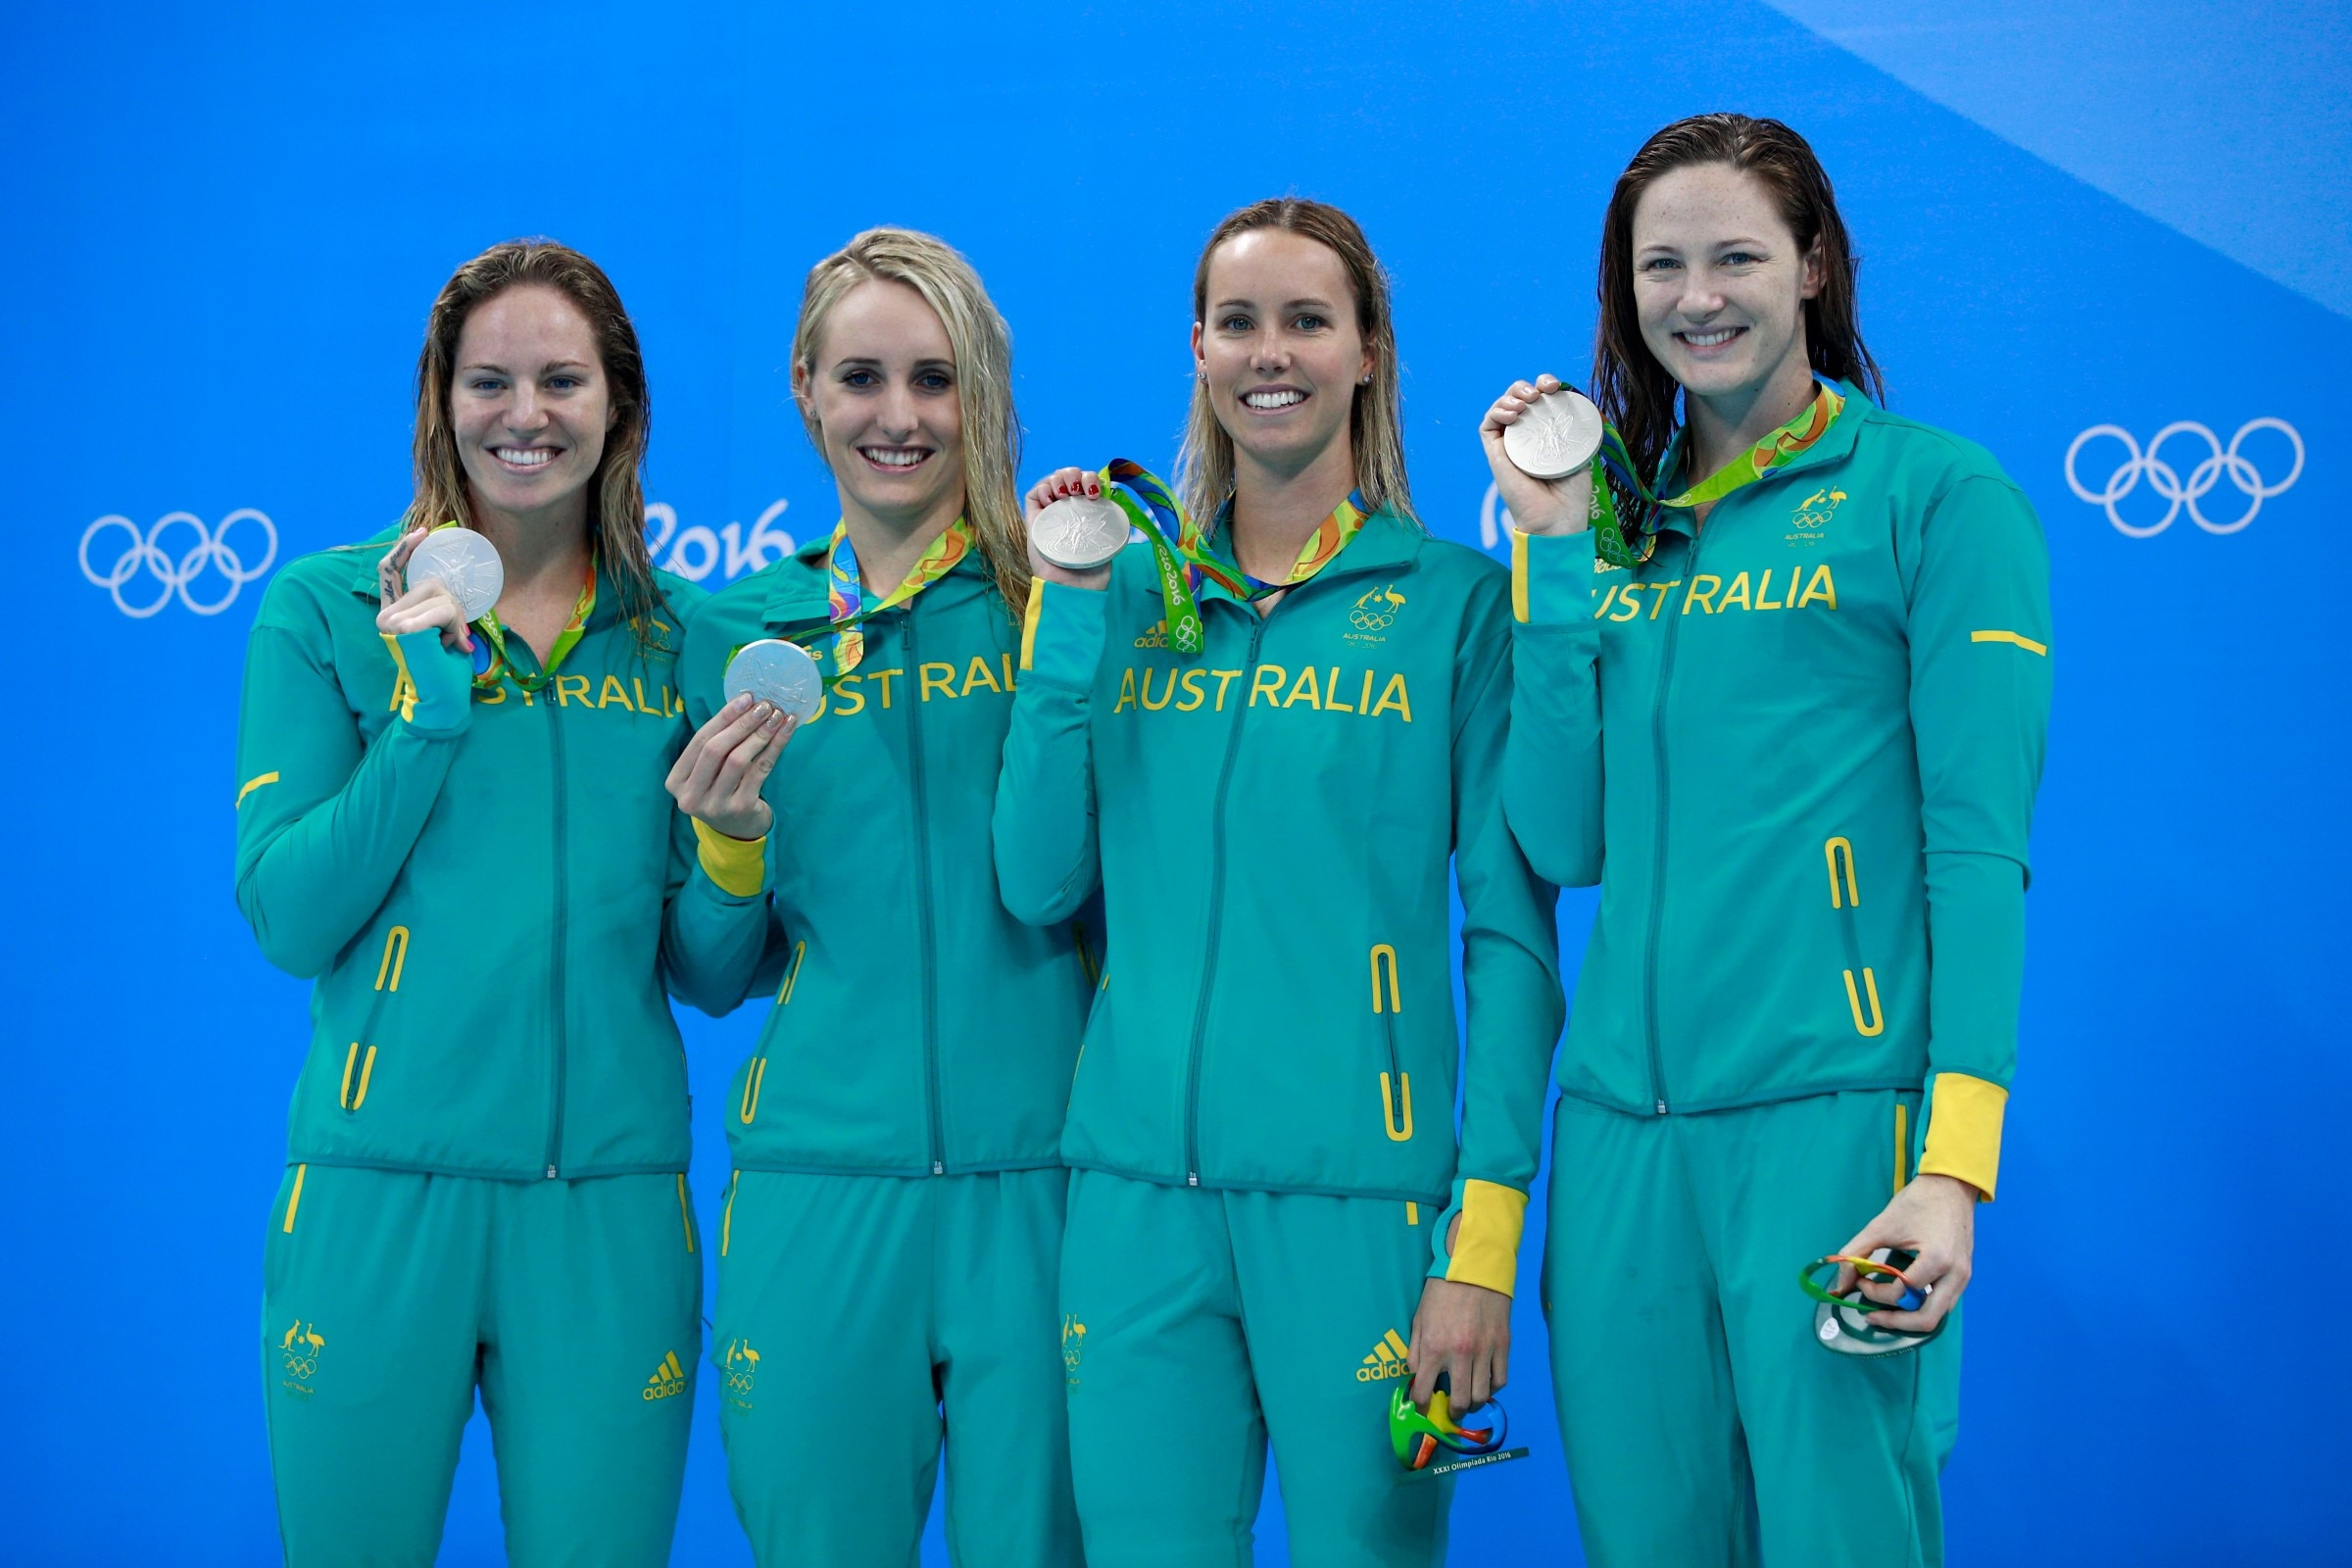 Swimming - 4x100m Medley Relay Women